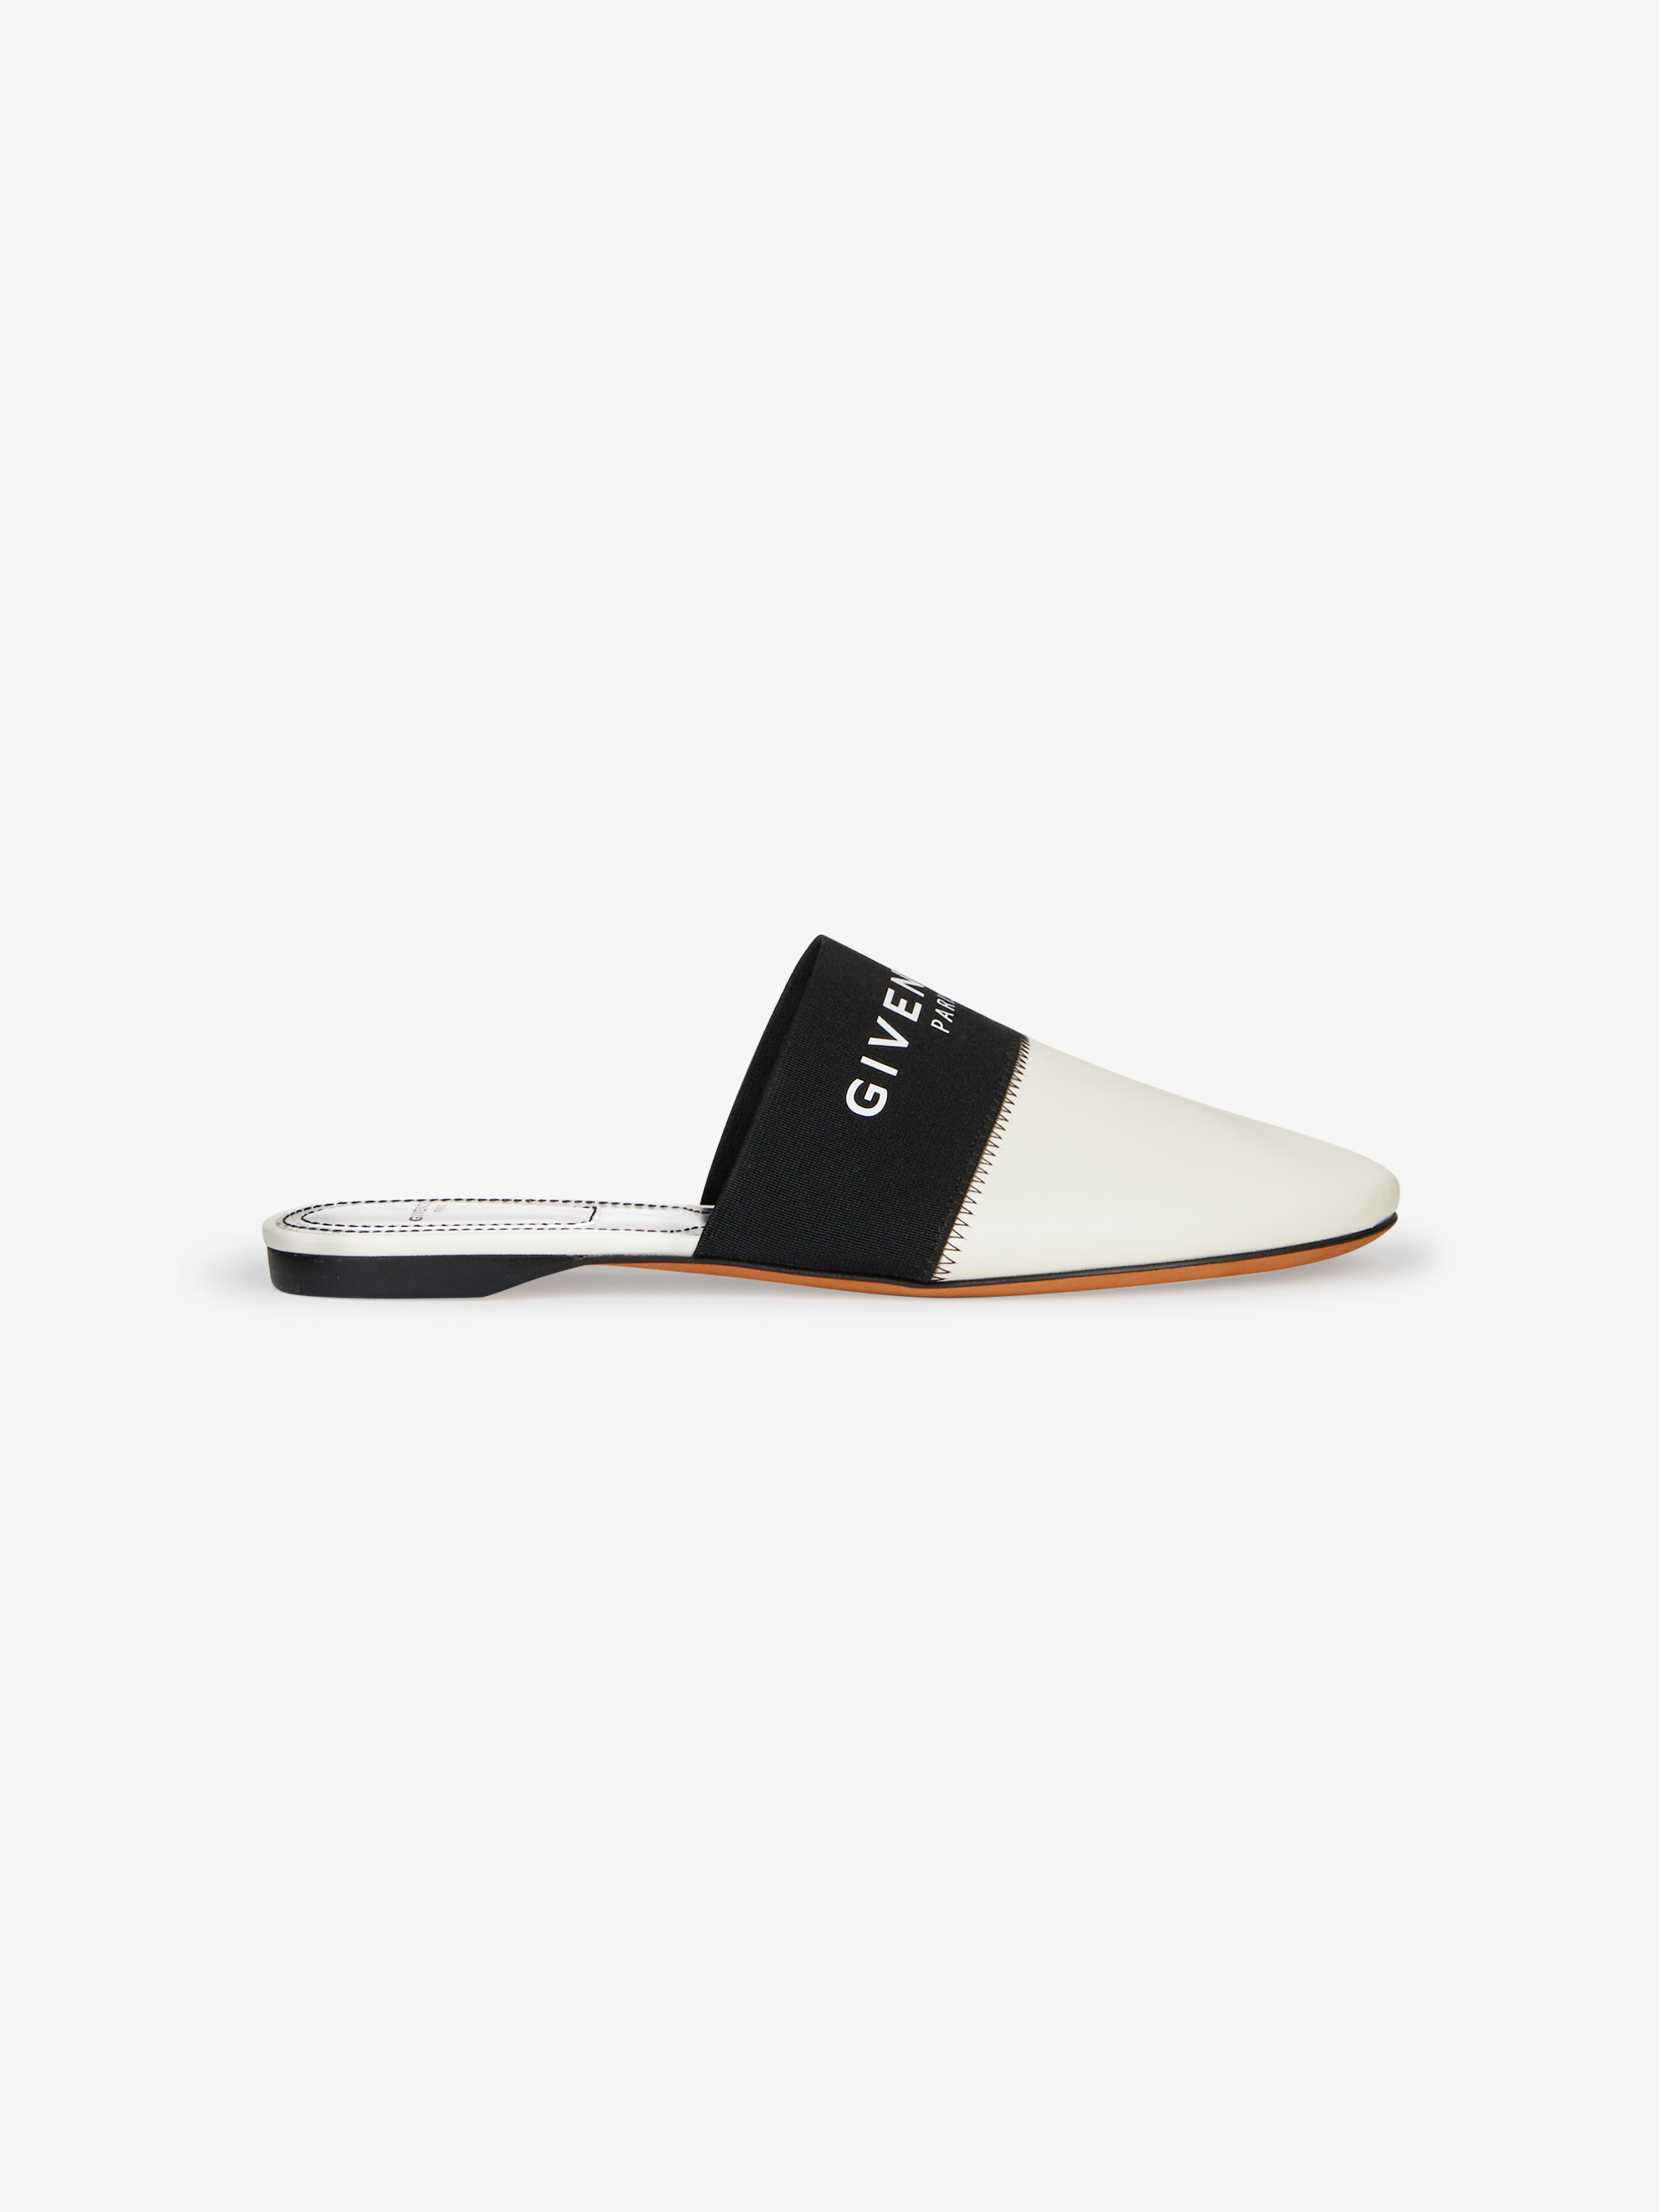 GIVENCHY PARIS flat mules in leather